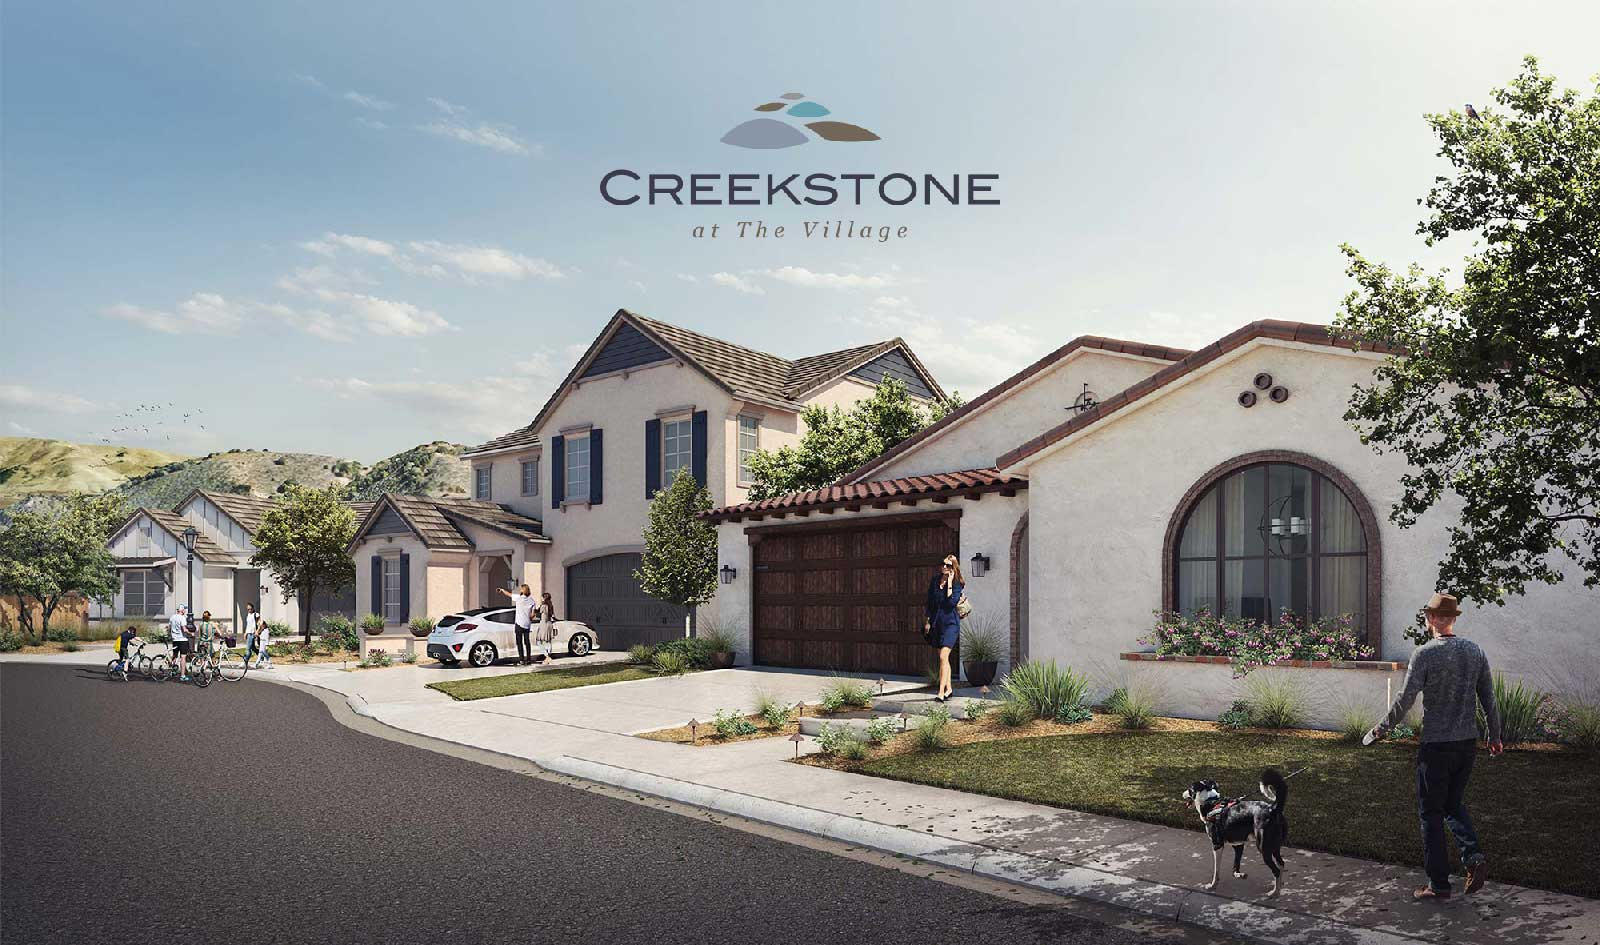 Creekstone-at-the-village-Home-Stretch